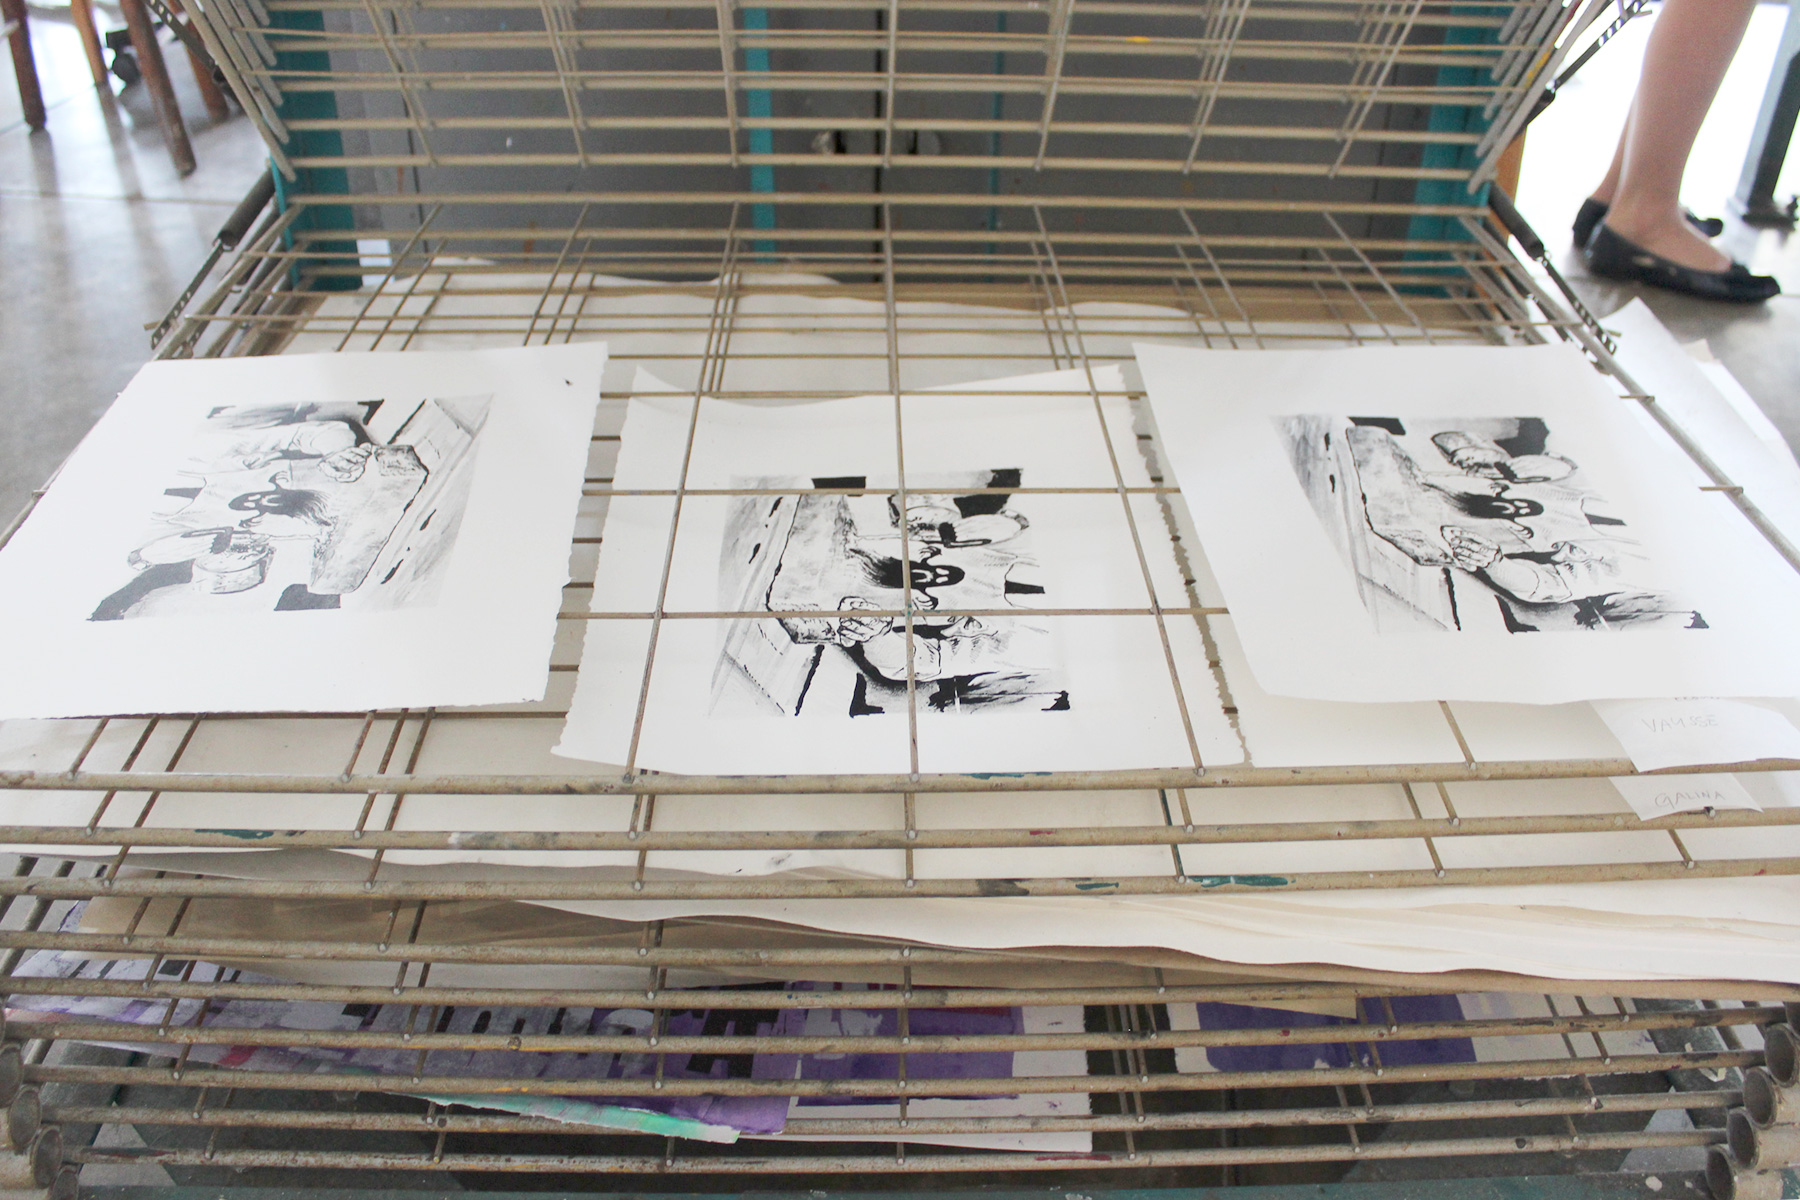 Three black and white prints sit atop a drying rack.